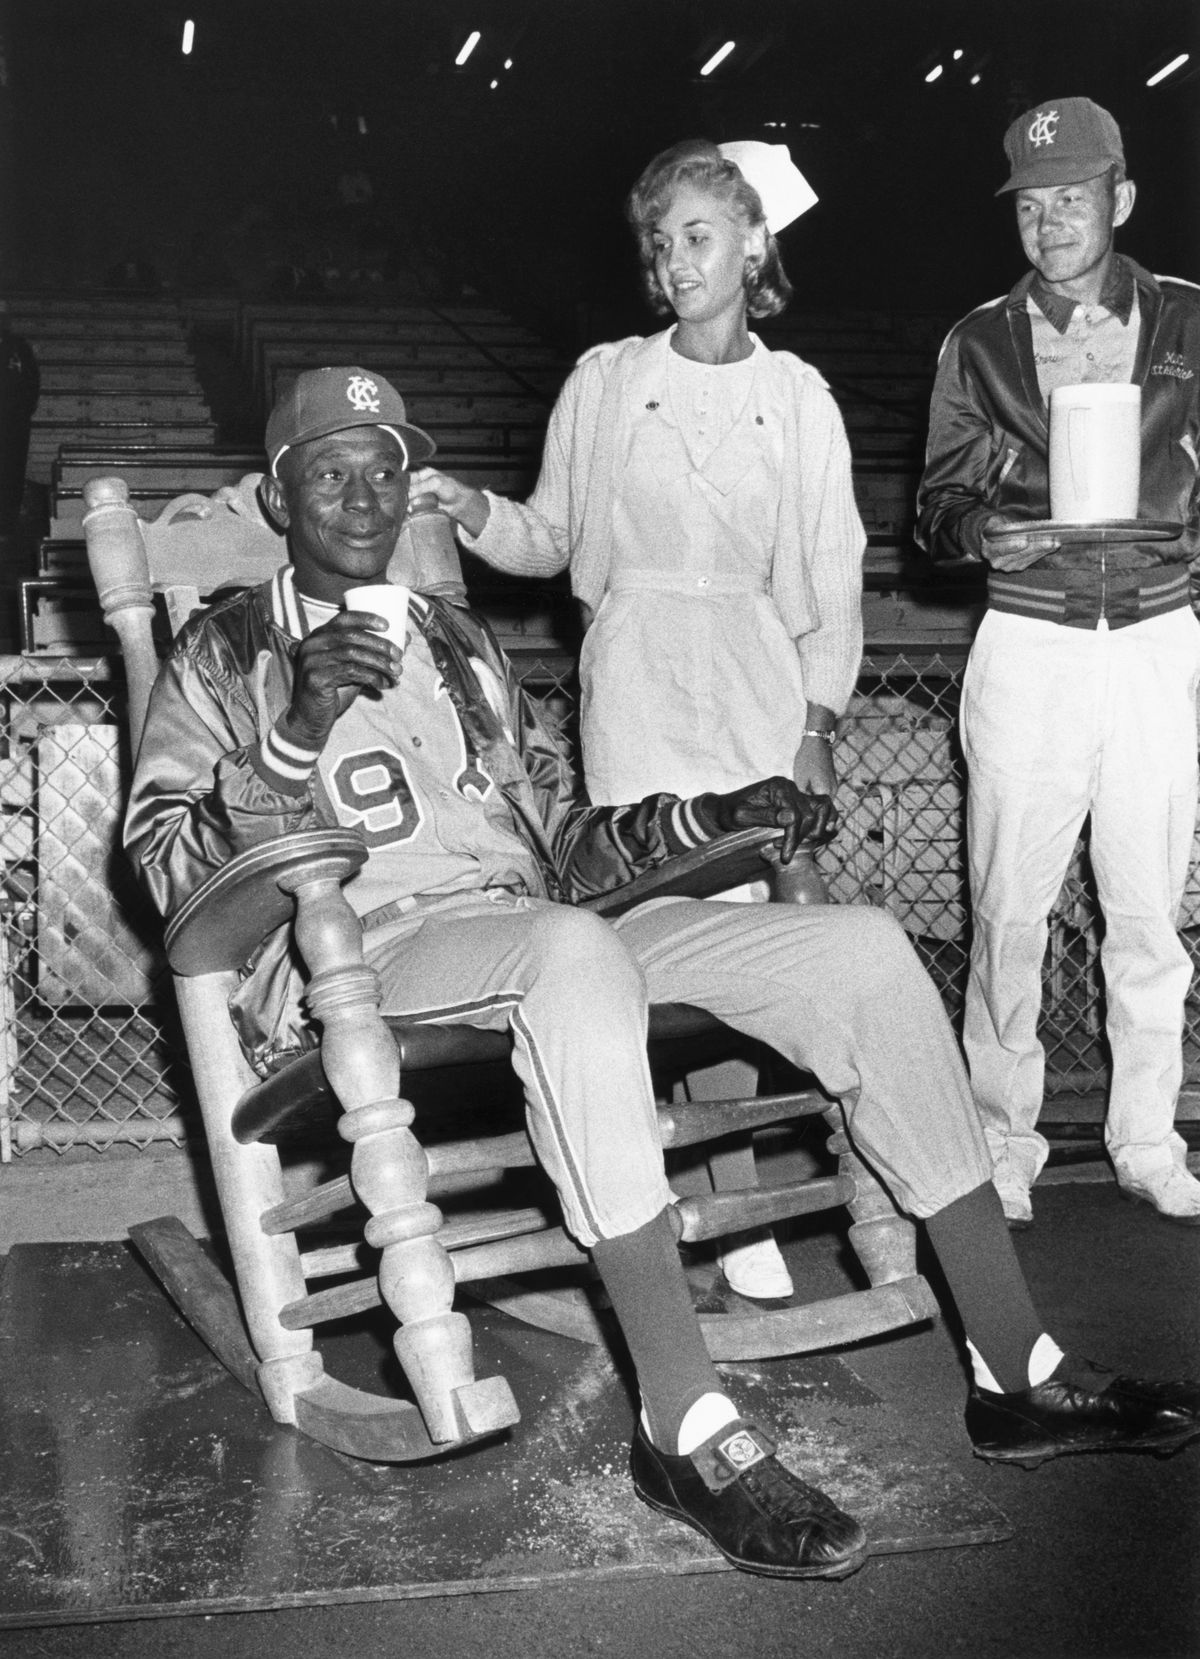 Satchel Paige in a Rocking Chair at a Game